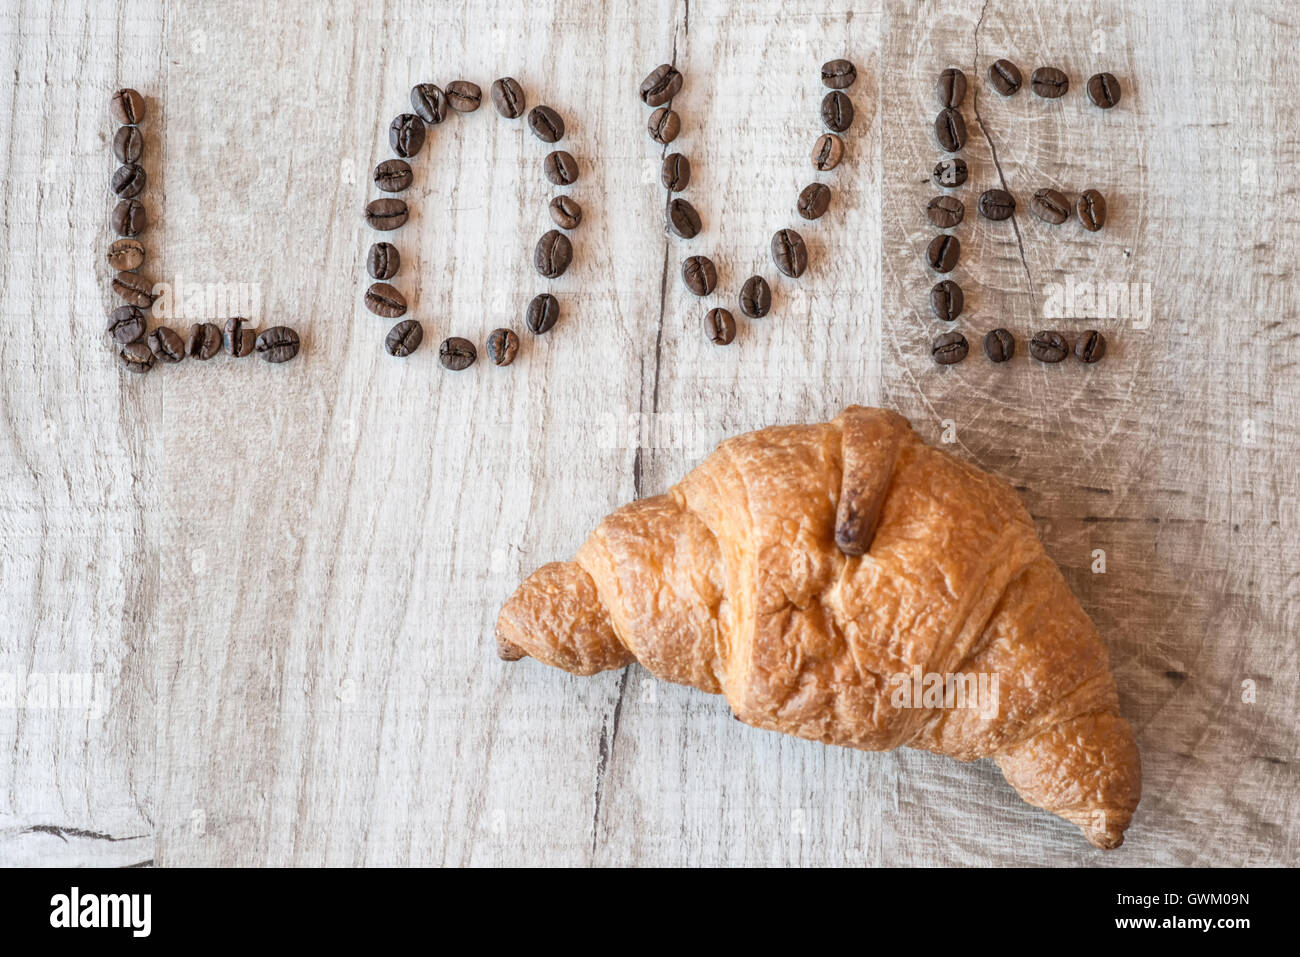 croissant on wooden background. title coffee beans love - Stock Image